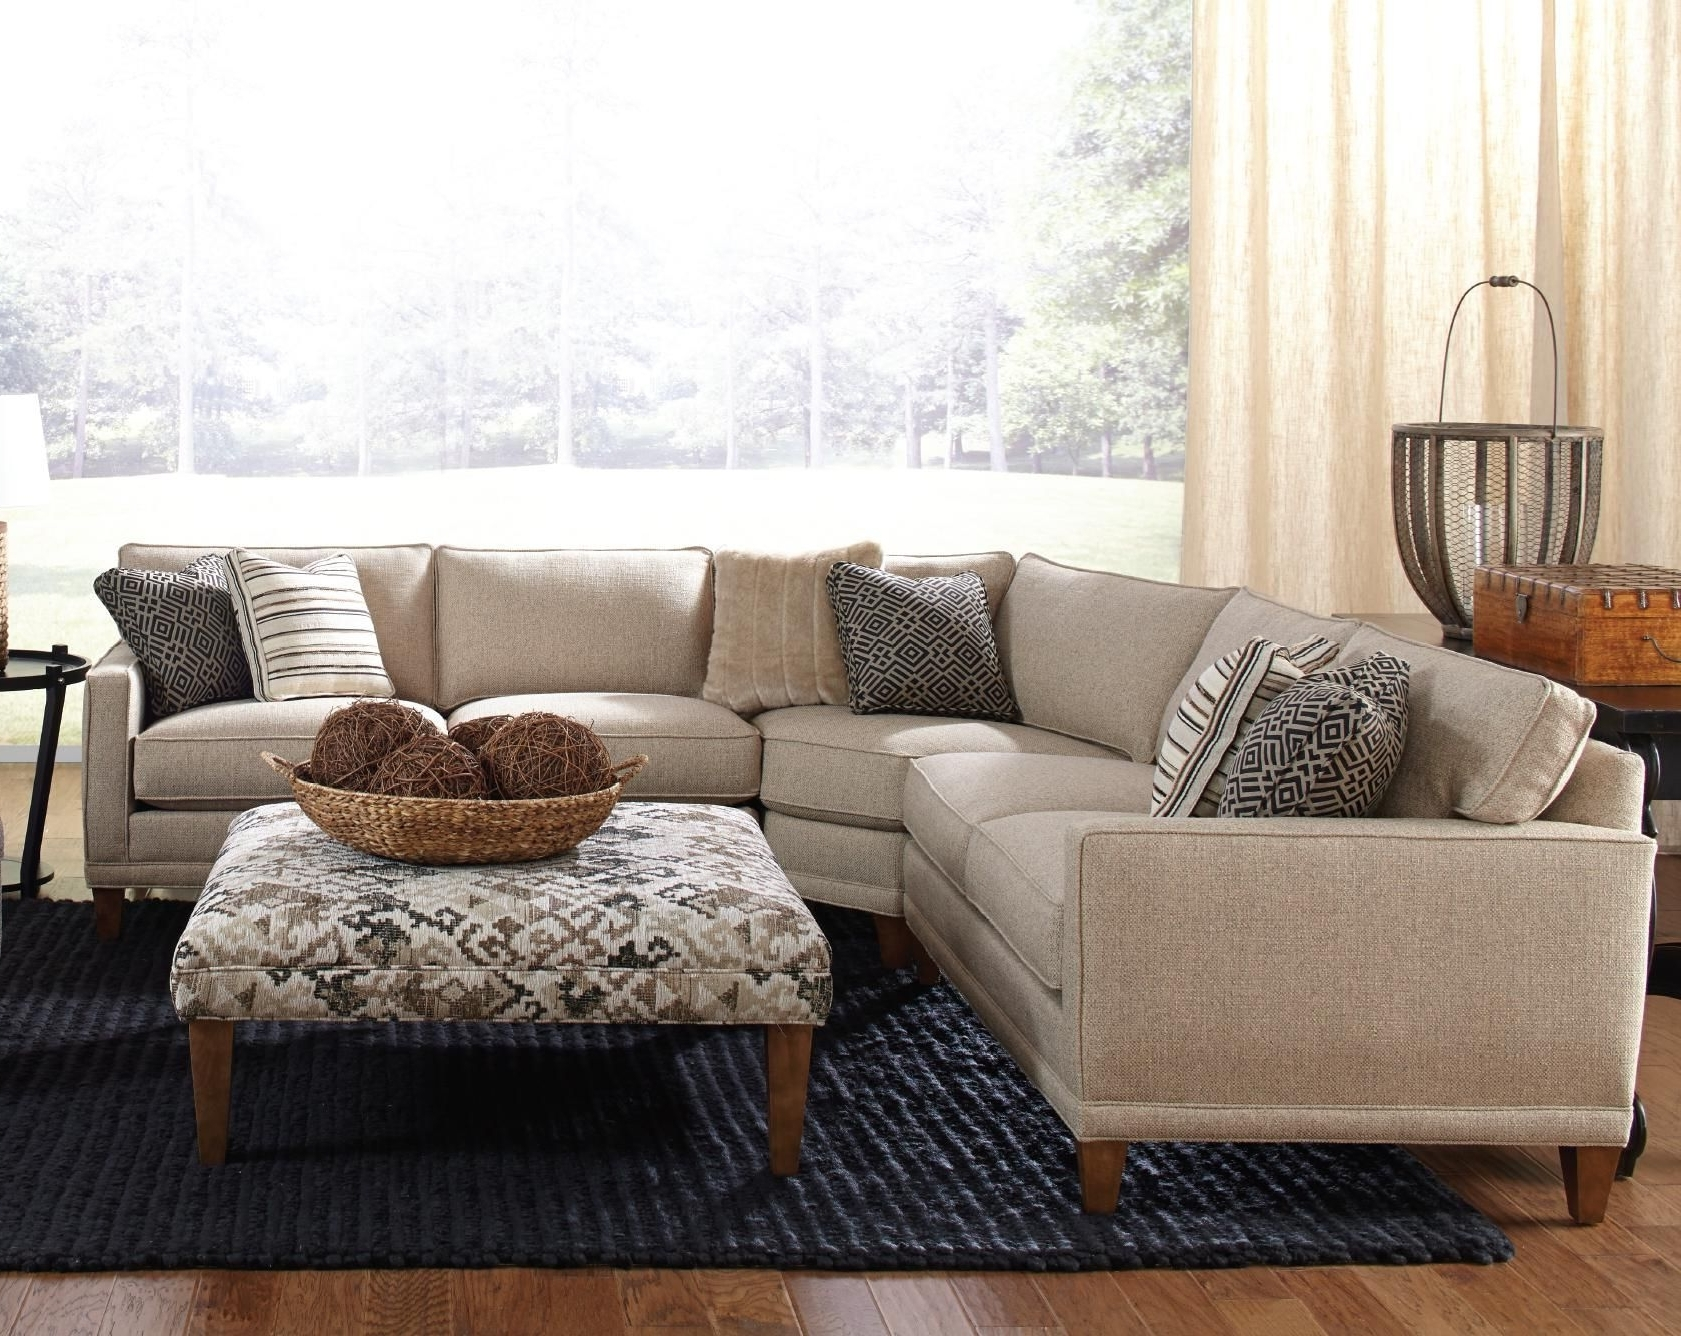 2018 Rowe Townsend Contemporary 3 Piece Sectional Sofa – Sprintz Within Nashville Sectional Sofas (View 2 of 15)